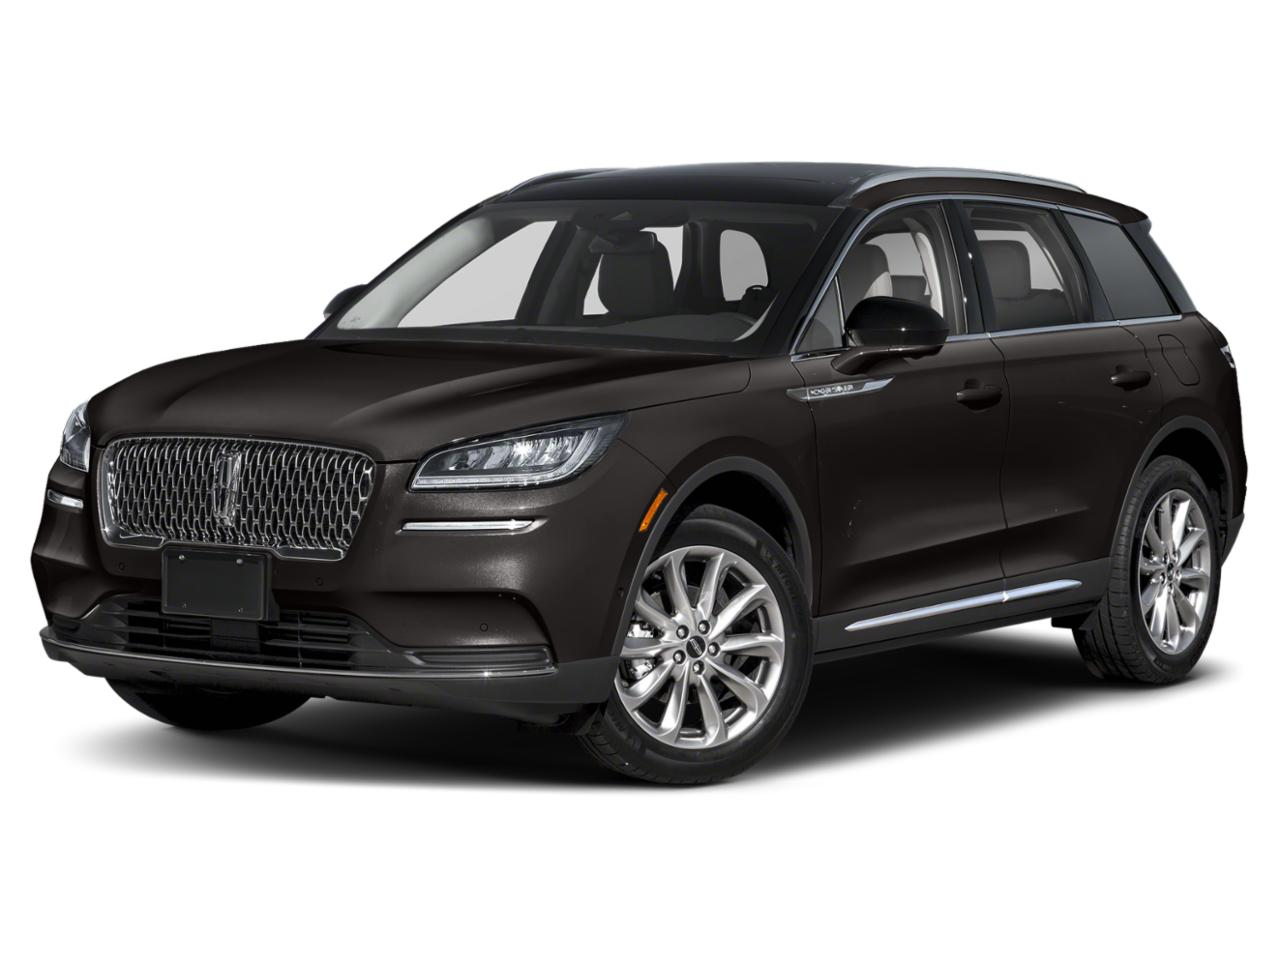 2021 LINCOLN Corsair Vehicle Photo in Neenah, WI 54956-3151